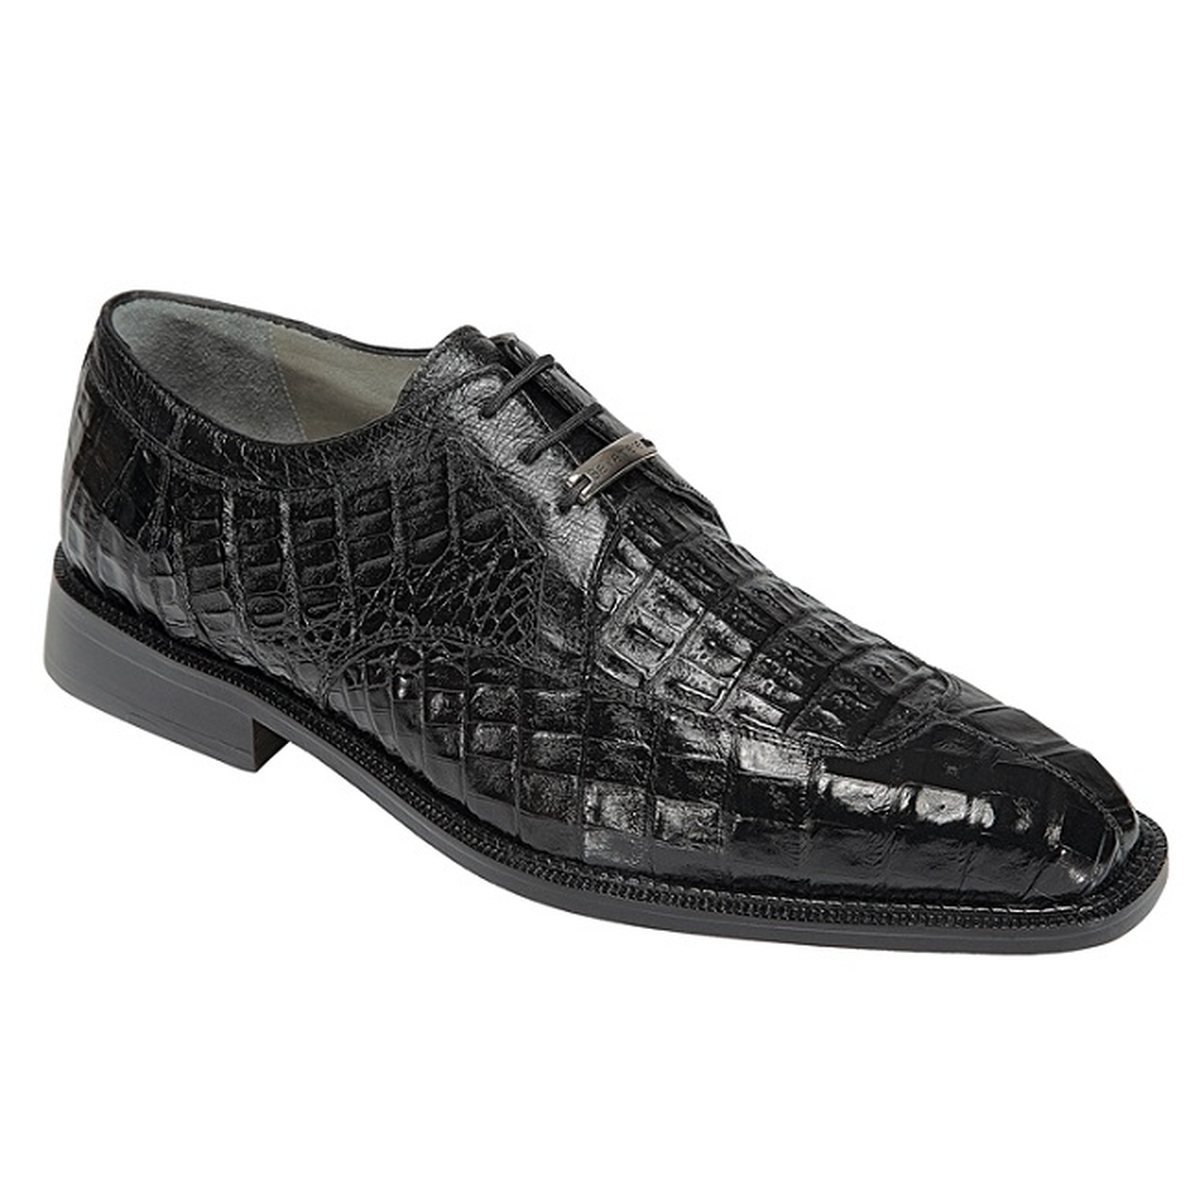 Belvedere Mens Crocodile Shoes Exotic Italian Black Oxford Susa P32